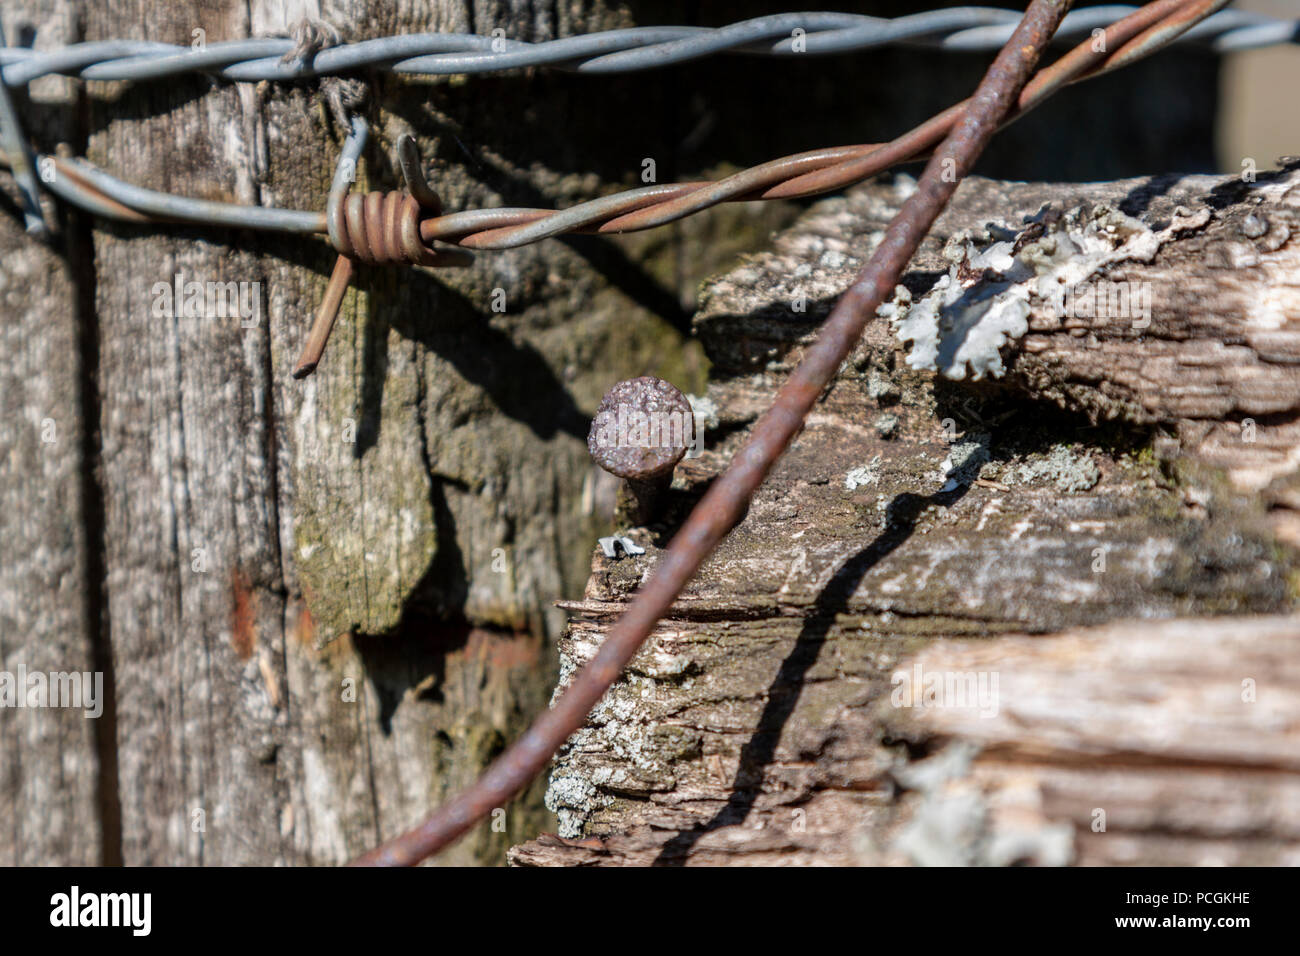 Close-up of nails and barbed wire on a fungus covered fence post. - Stock Image